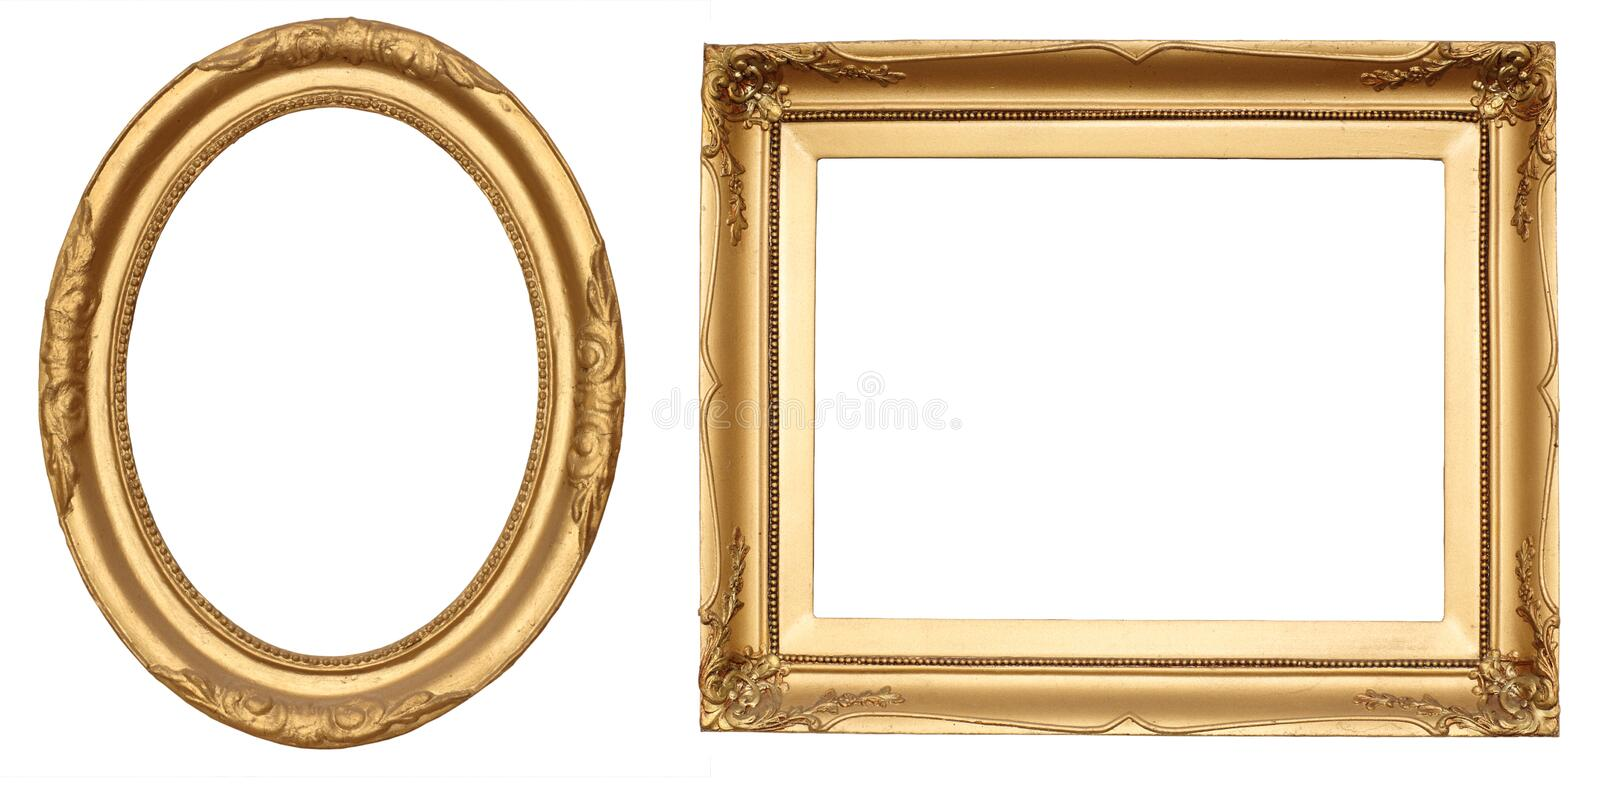 Gold antique frames stock photo. Image of ancient, empty - 9325480